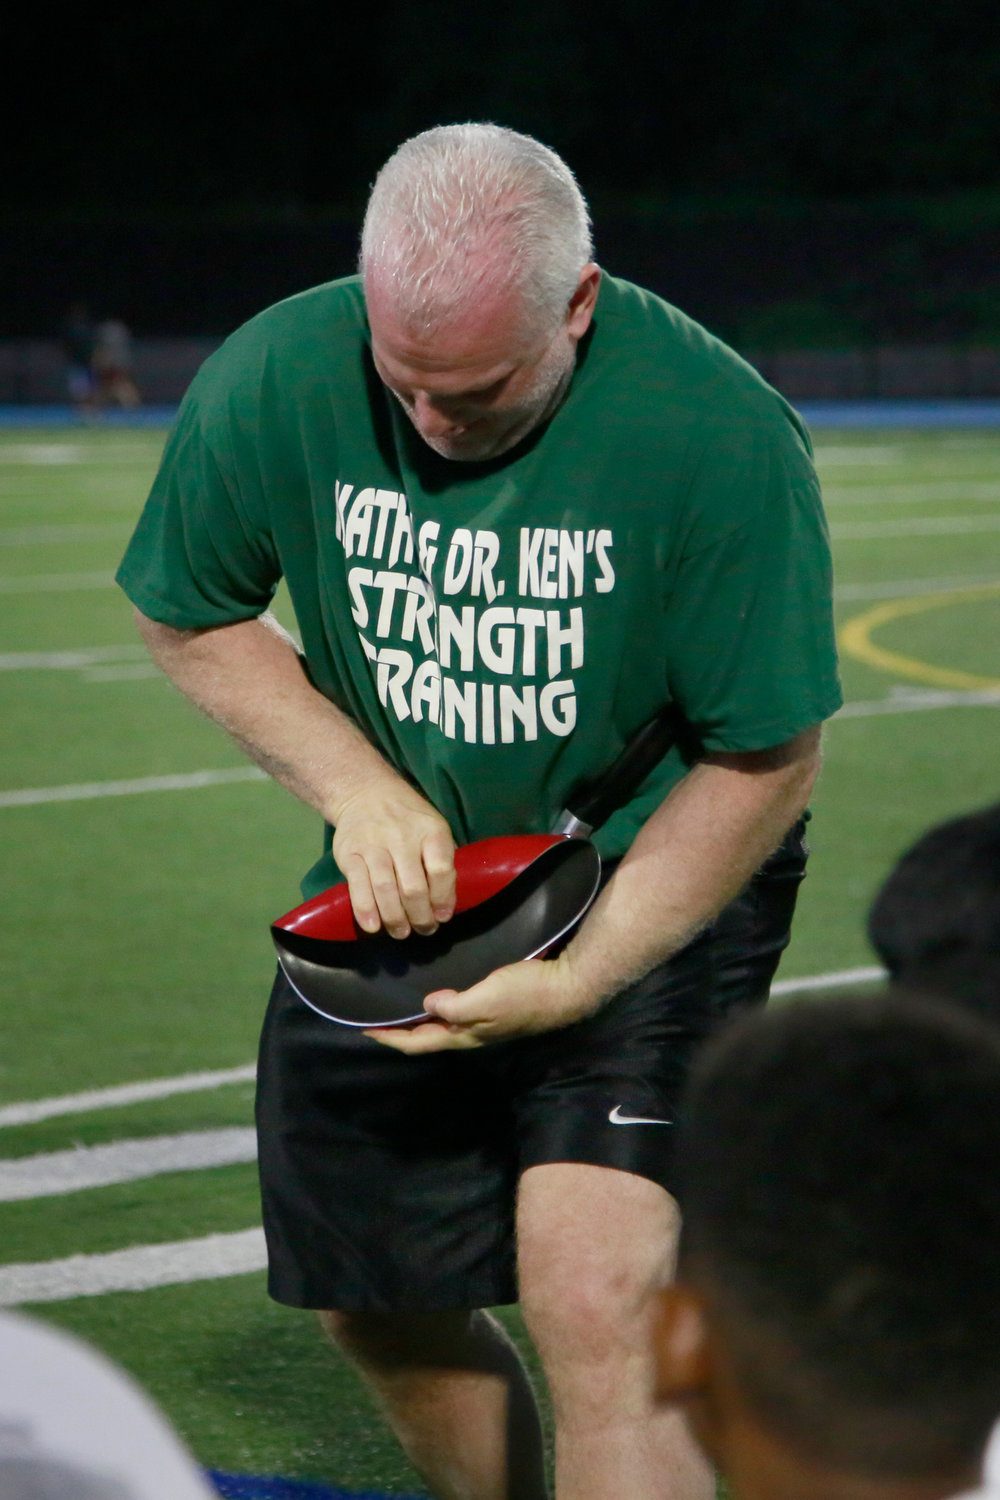 Guinness World Record holder Steve Weiner, who trained with Leistner, rolled a frying pan.